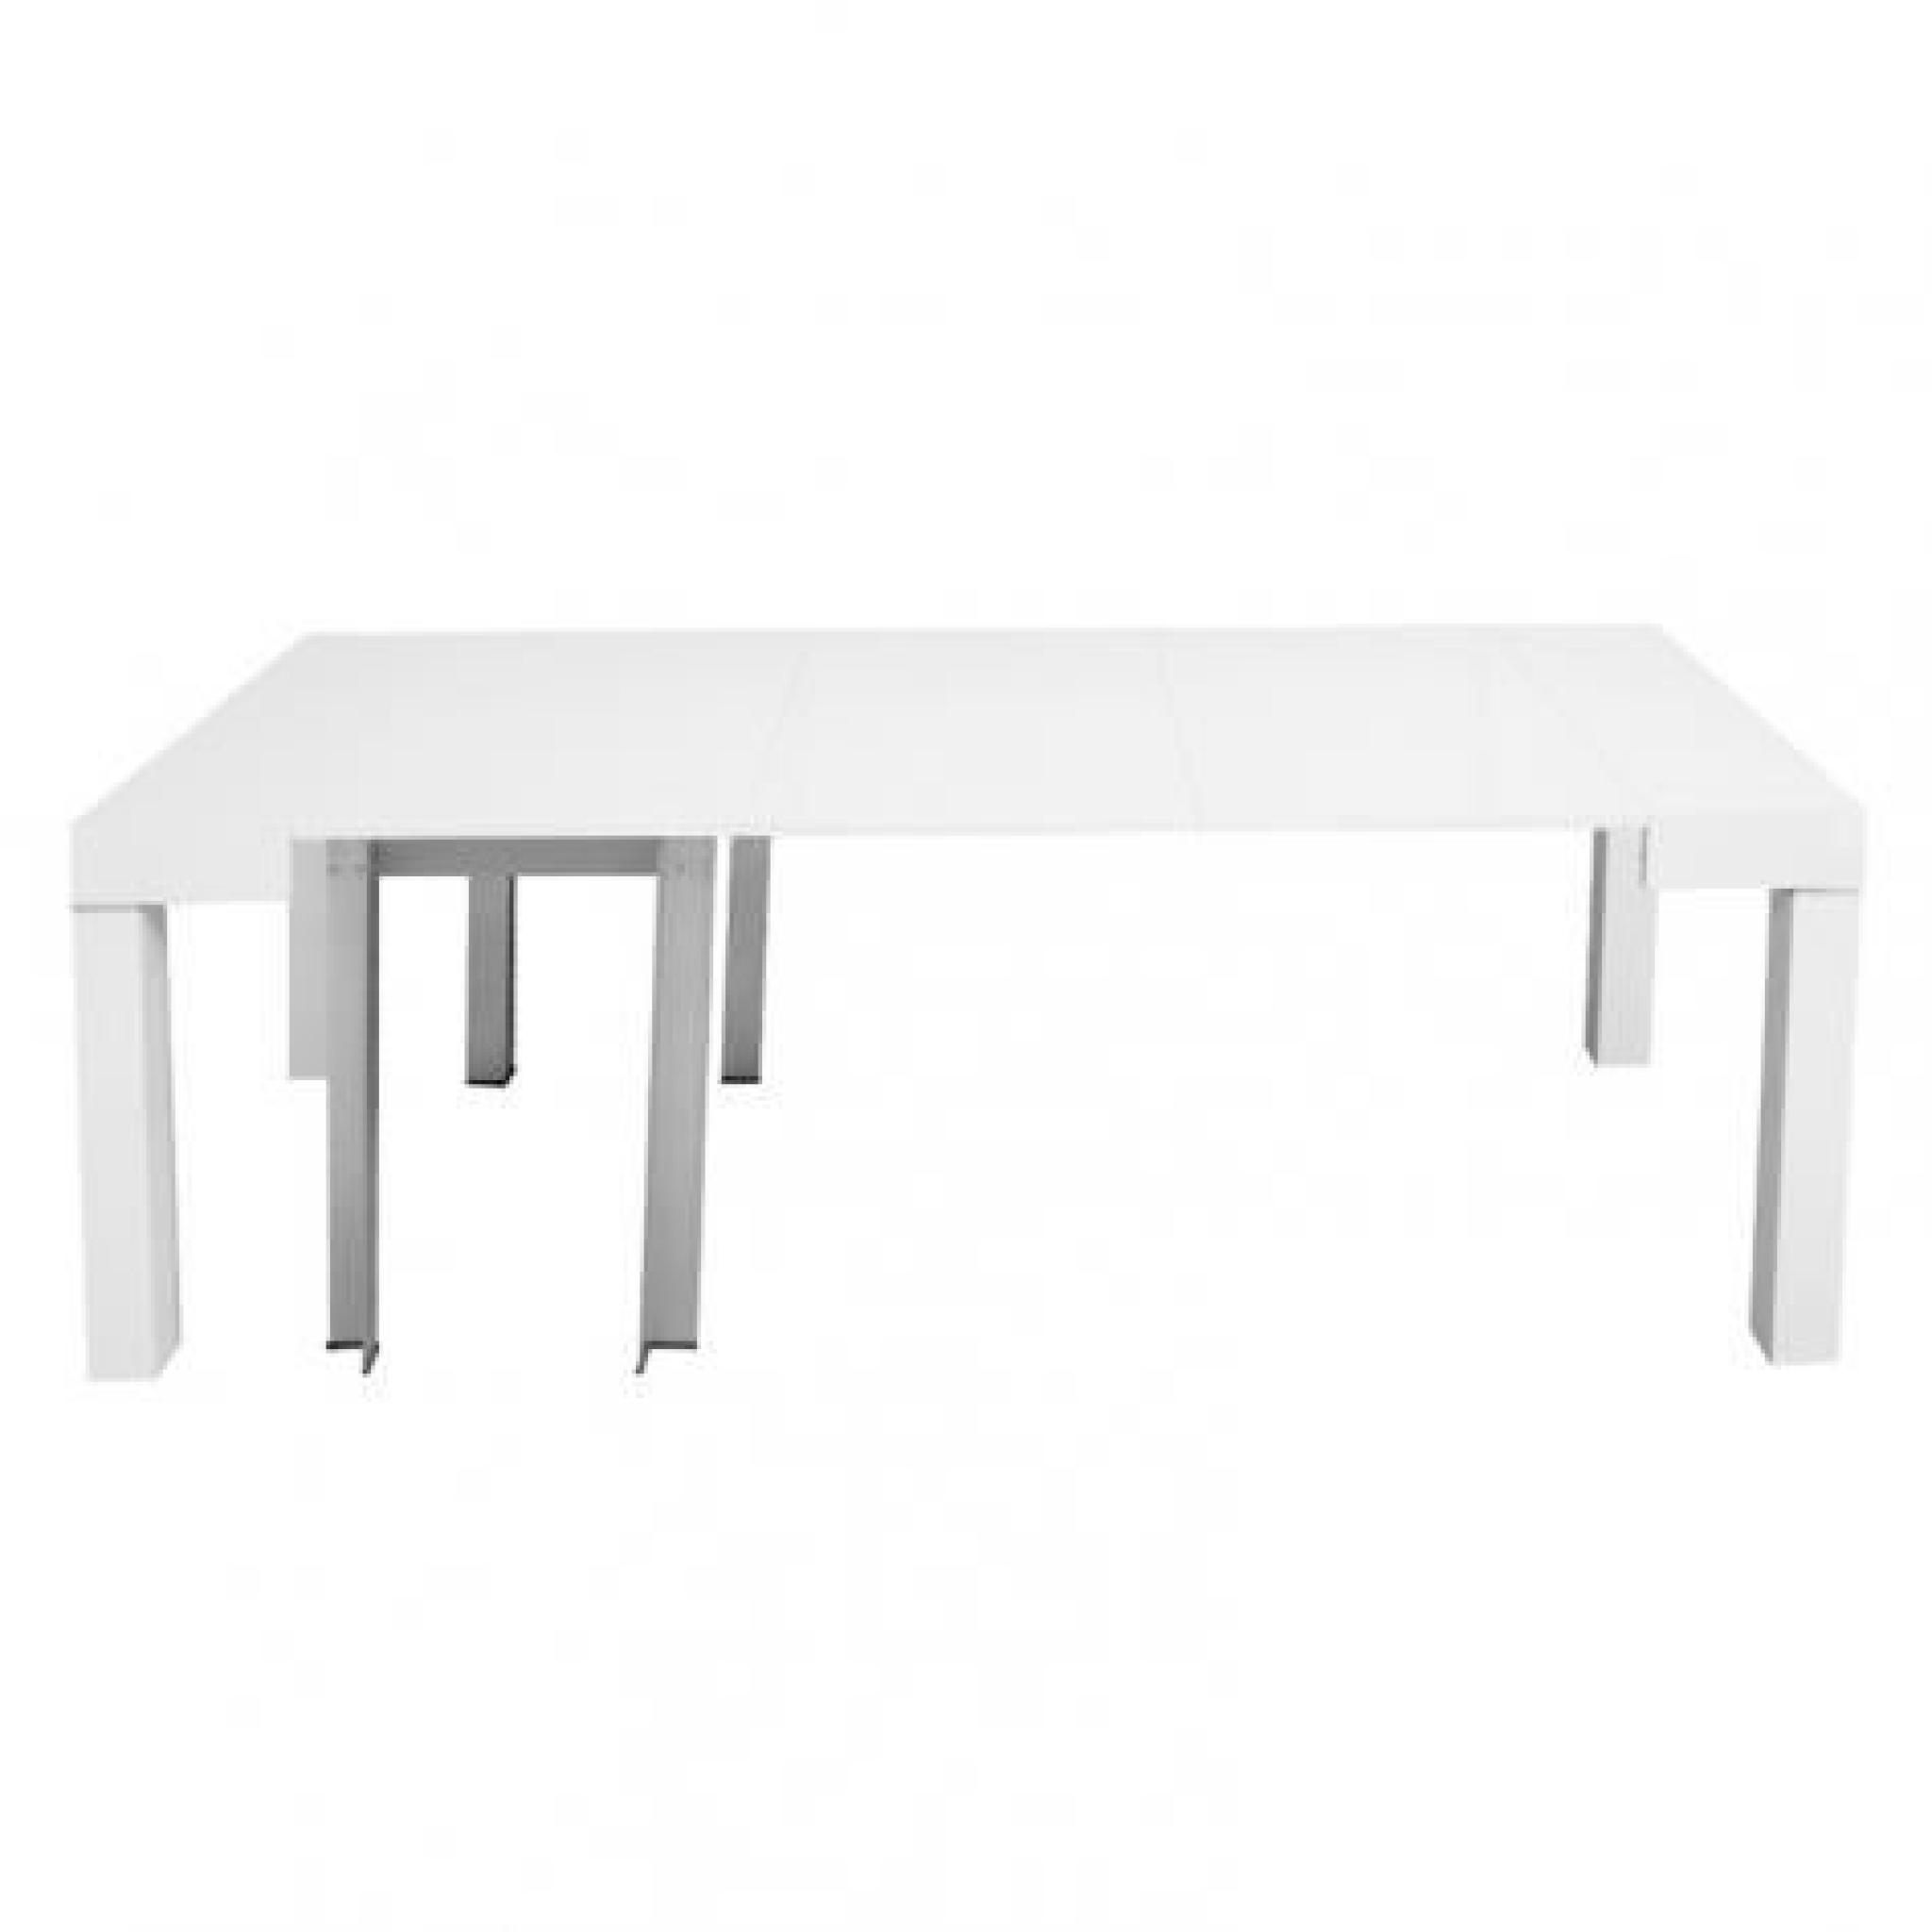 table console extensible blanche laqu e 4 rallonges alesia. Black Bedroom Furniture Sets. Home Design Ideas